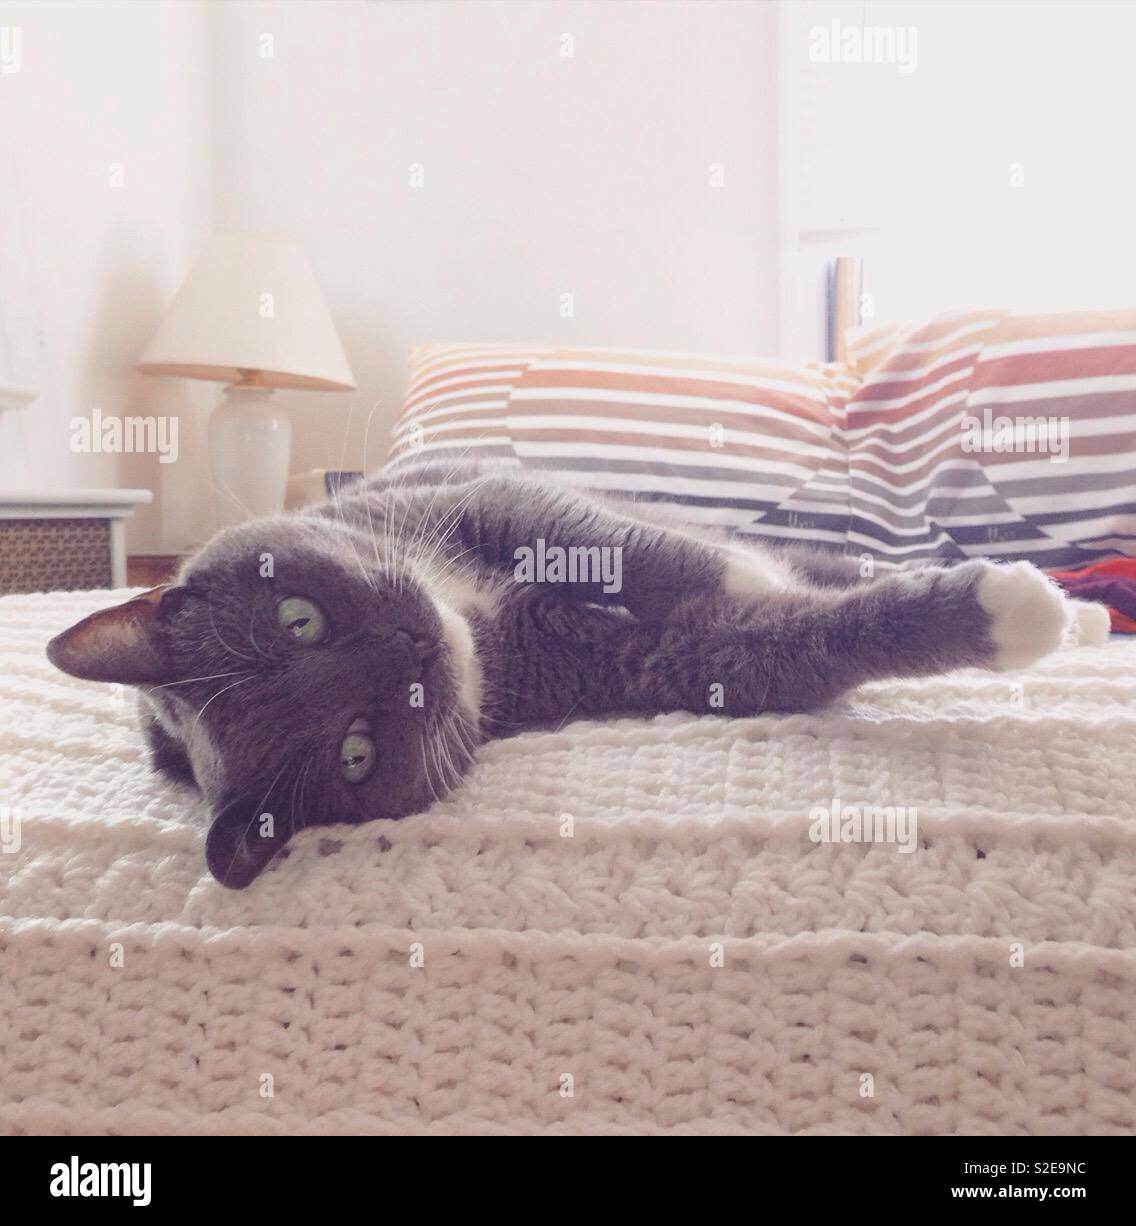 Best cat ever, Cute cat, gray cat, cozy, pampered pet, pets - Stock Image